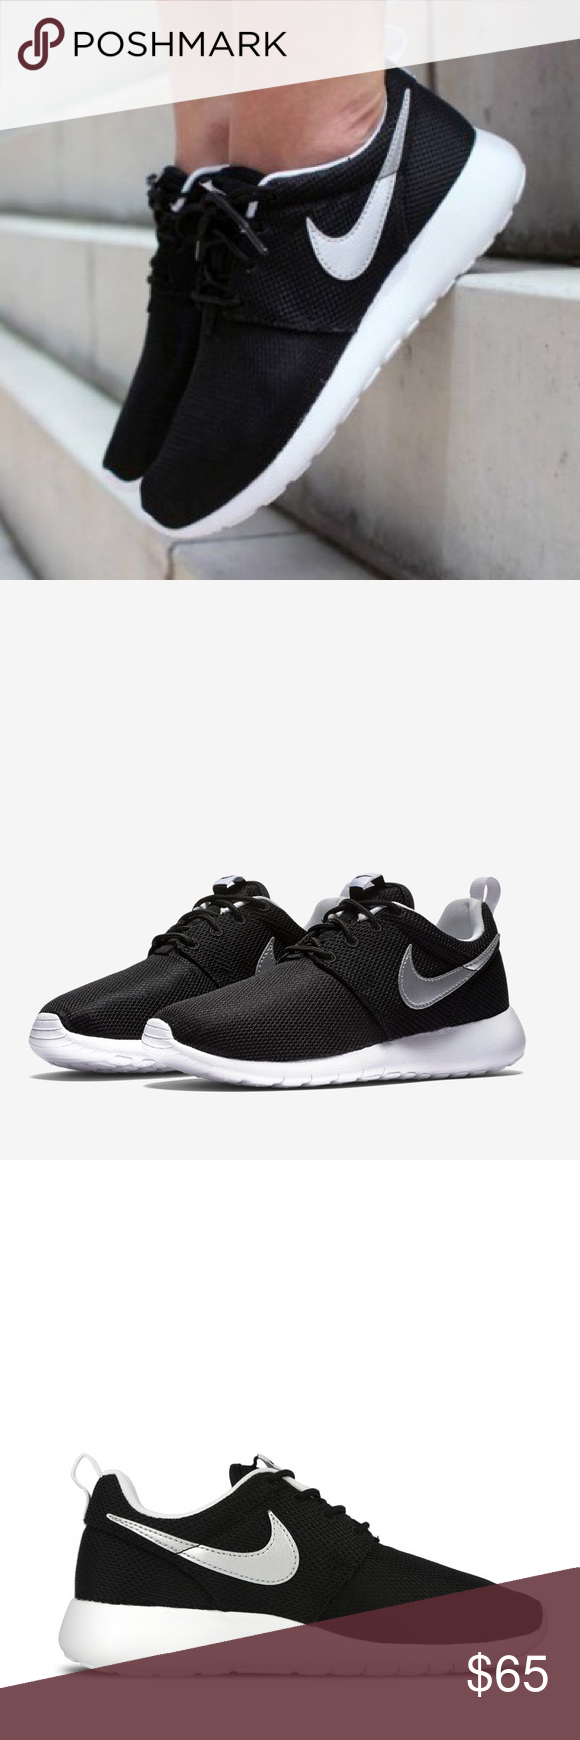 69748e8748a3 Nike Roshe one run black white shoes metallic new BRAND NEW WITHOUT ...